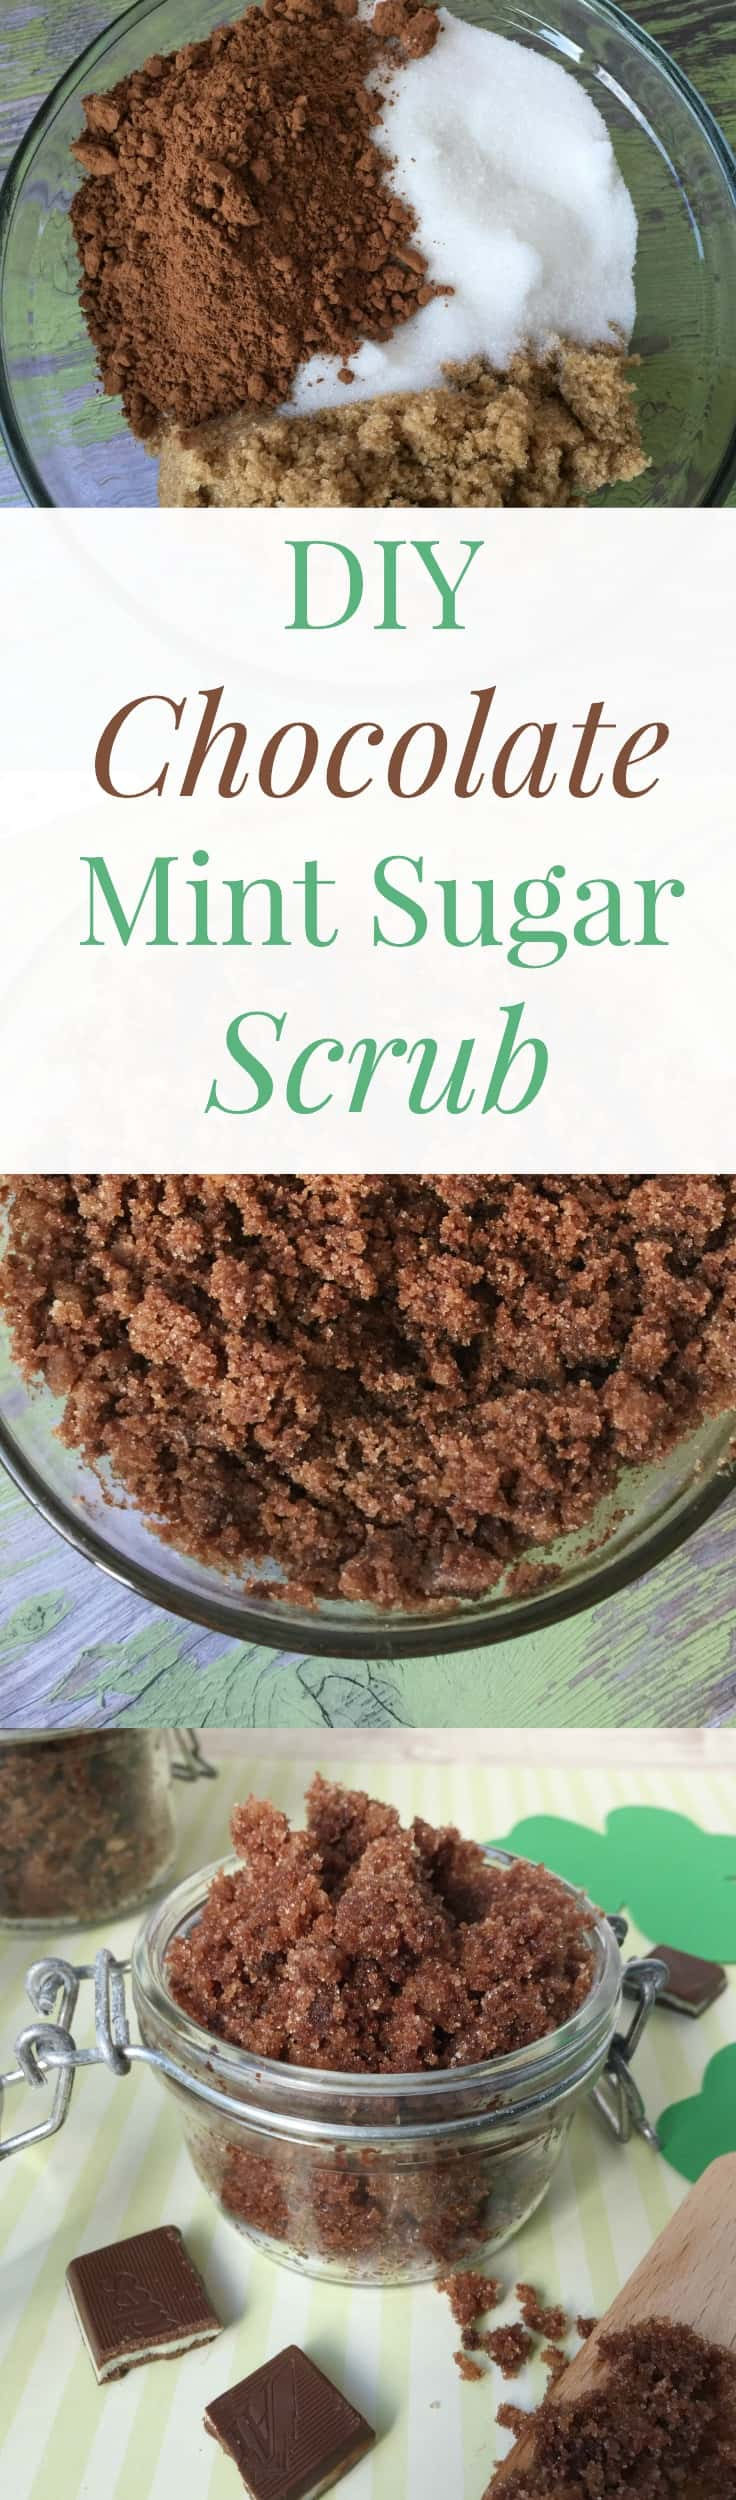 This DIY Chocolate Mint Sugar Scrub is a treat for your skin and your nose. This recipe smells like Thin Mints and will yield 2 cups!